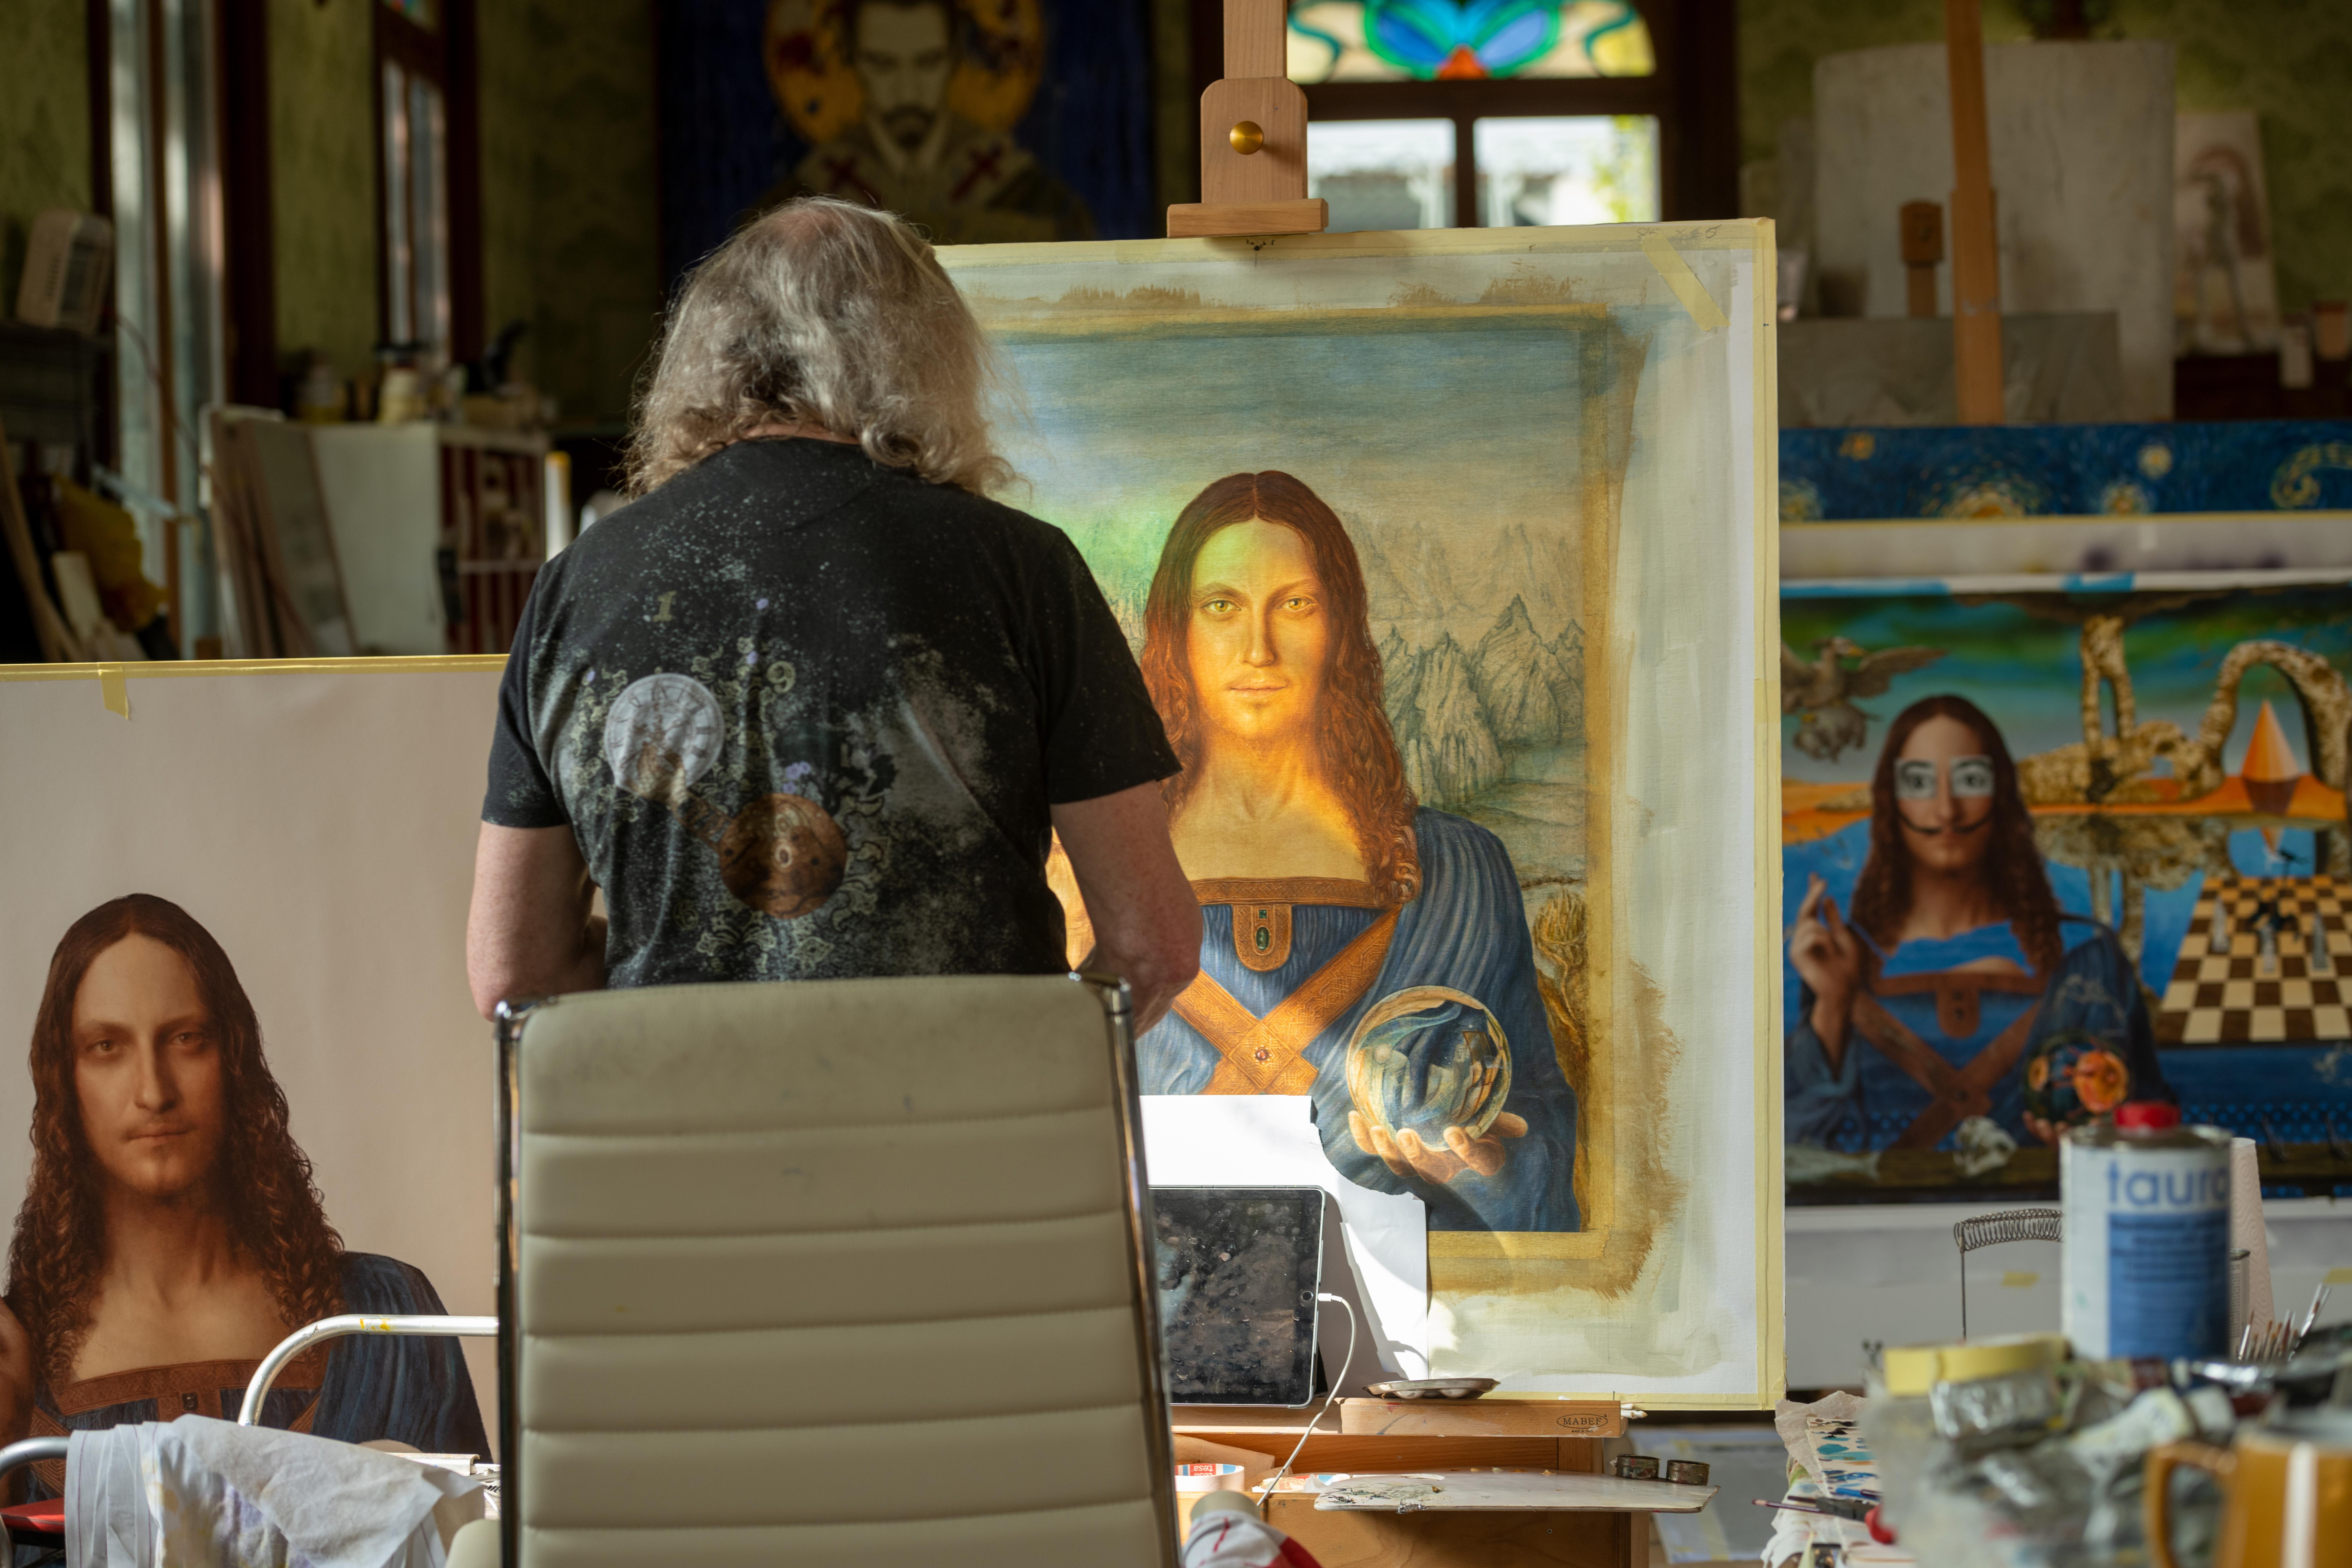 Notorious art forger Wolfgang Beltracchi enters the NFT world